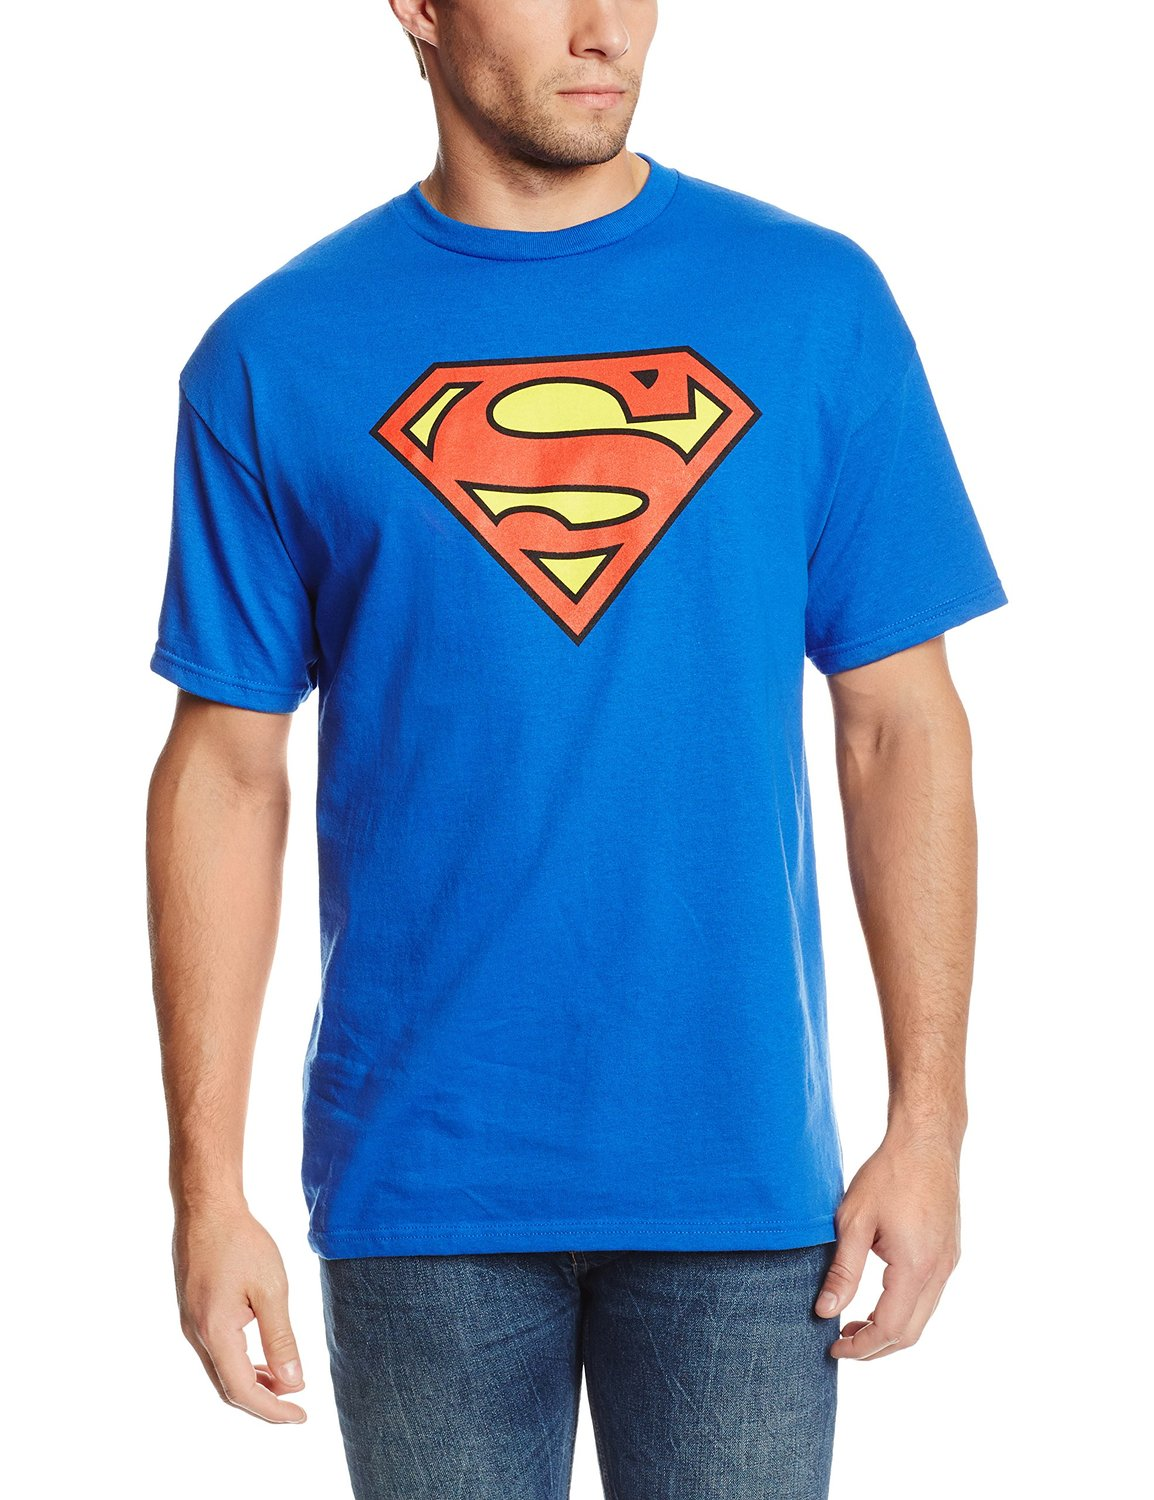 Amazon.com: DC Comics Superman Classic Logo Men's Royal Blue T-shirt: Clothing